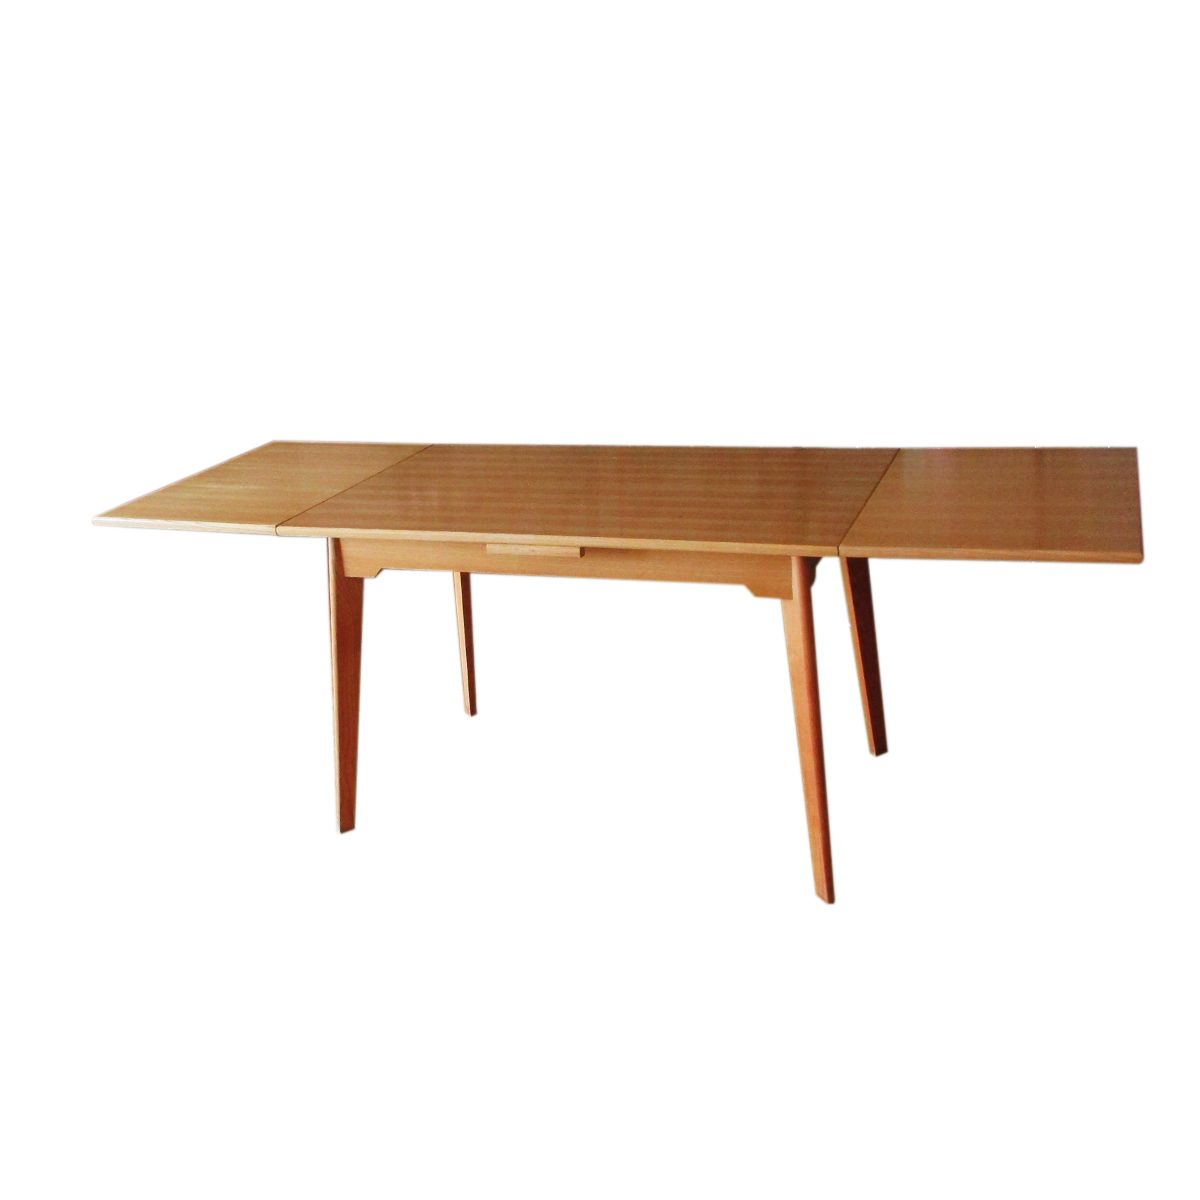 Vintage Beech Extendable Dining Table From Perrenoud 1950s For Sale